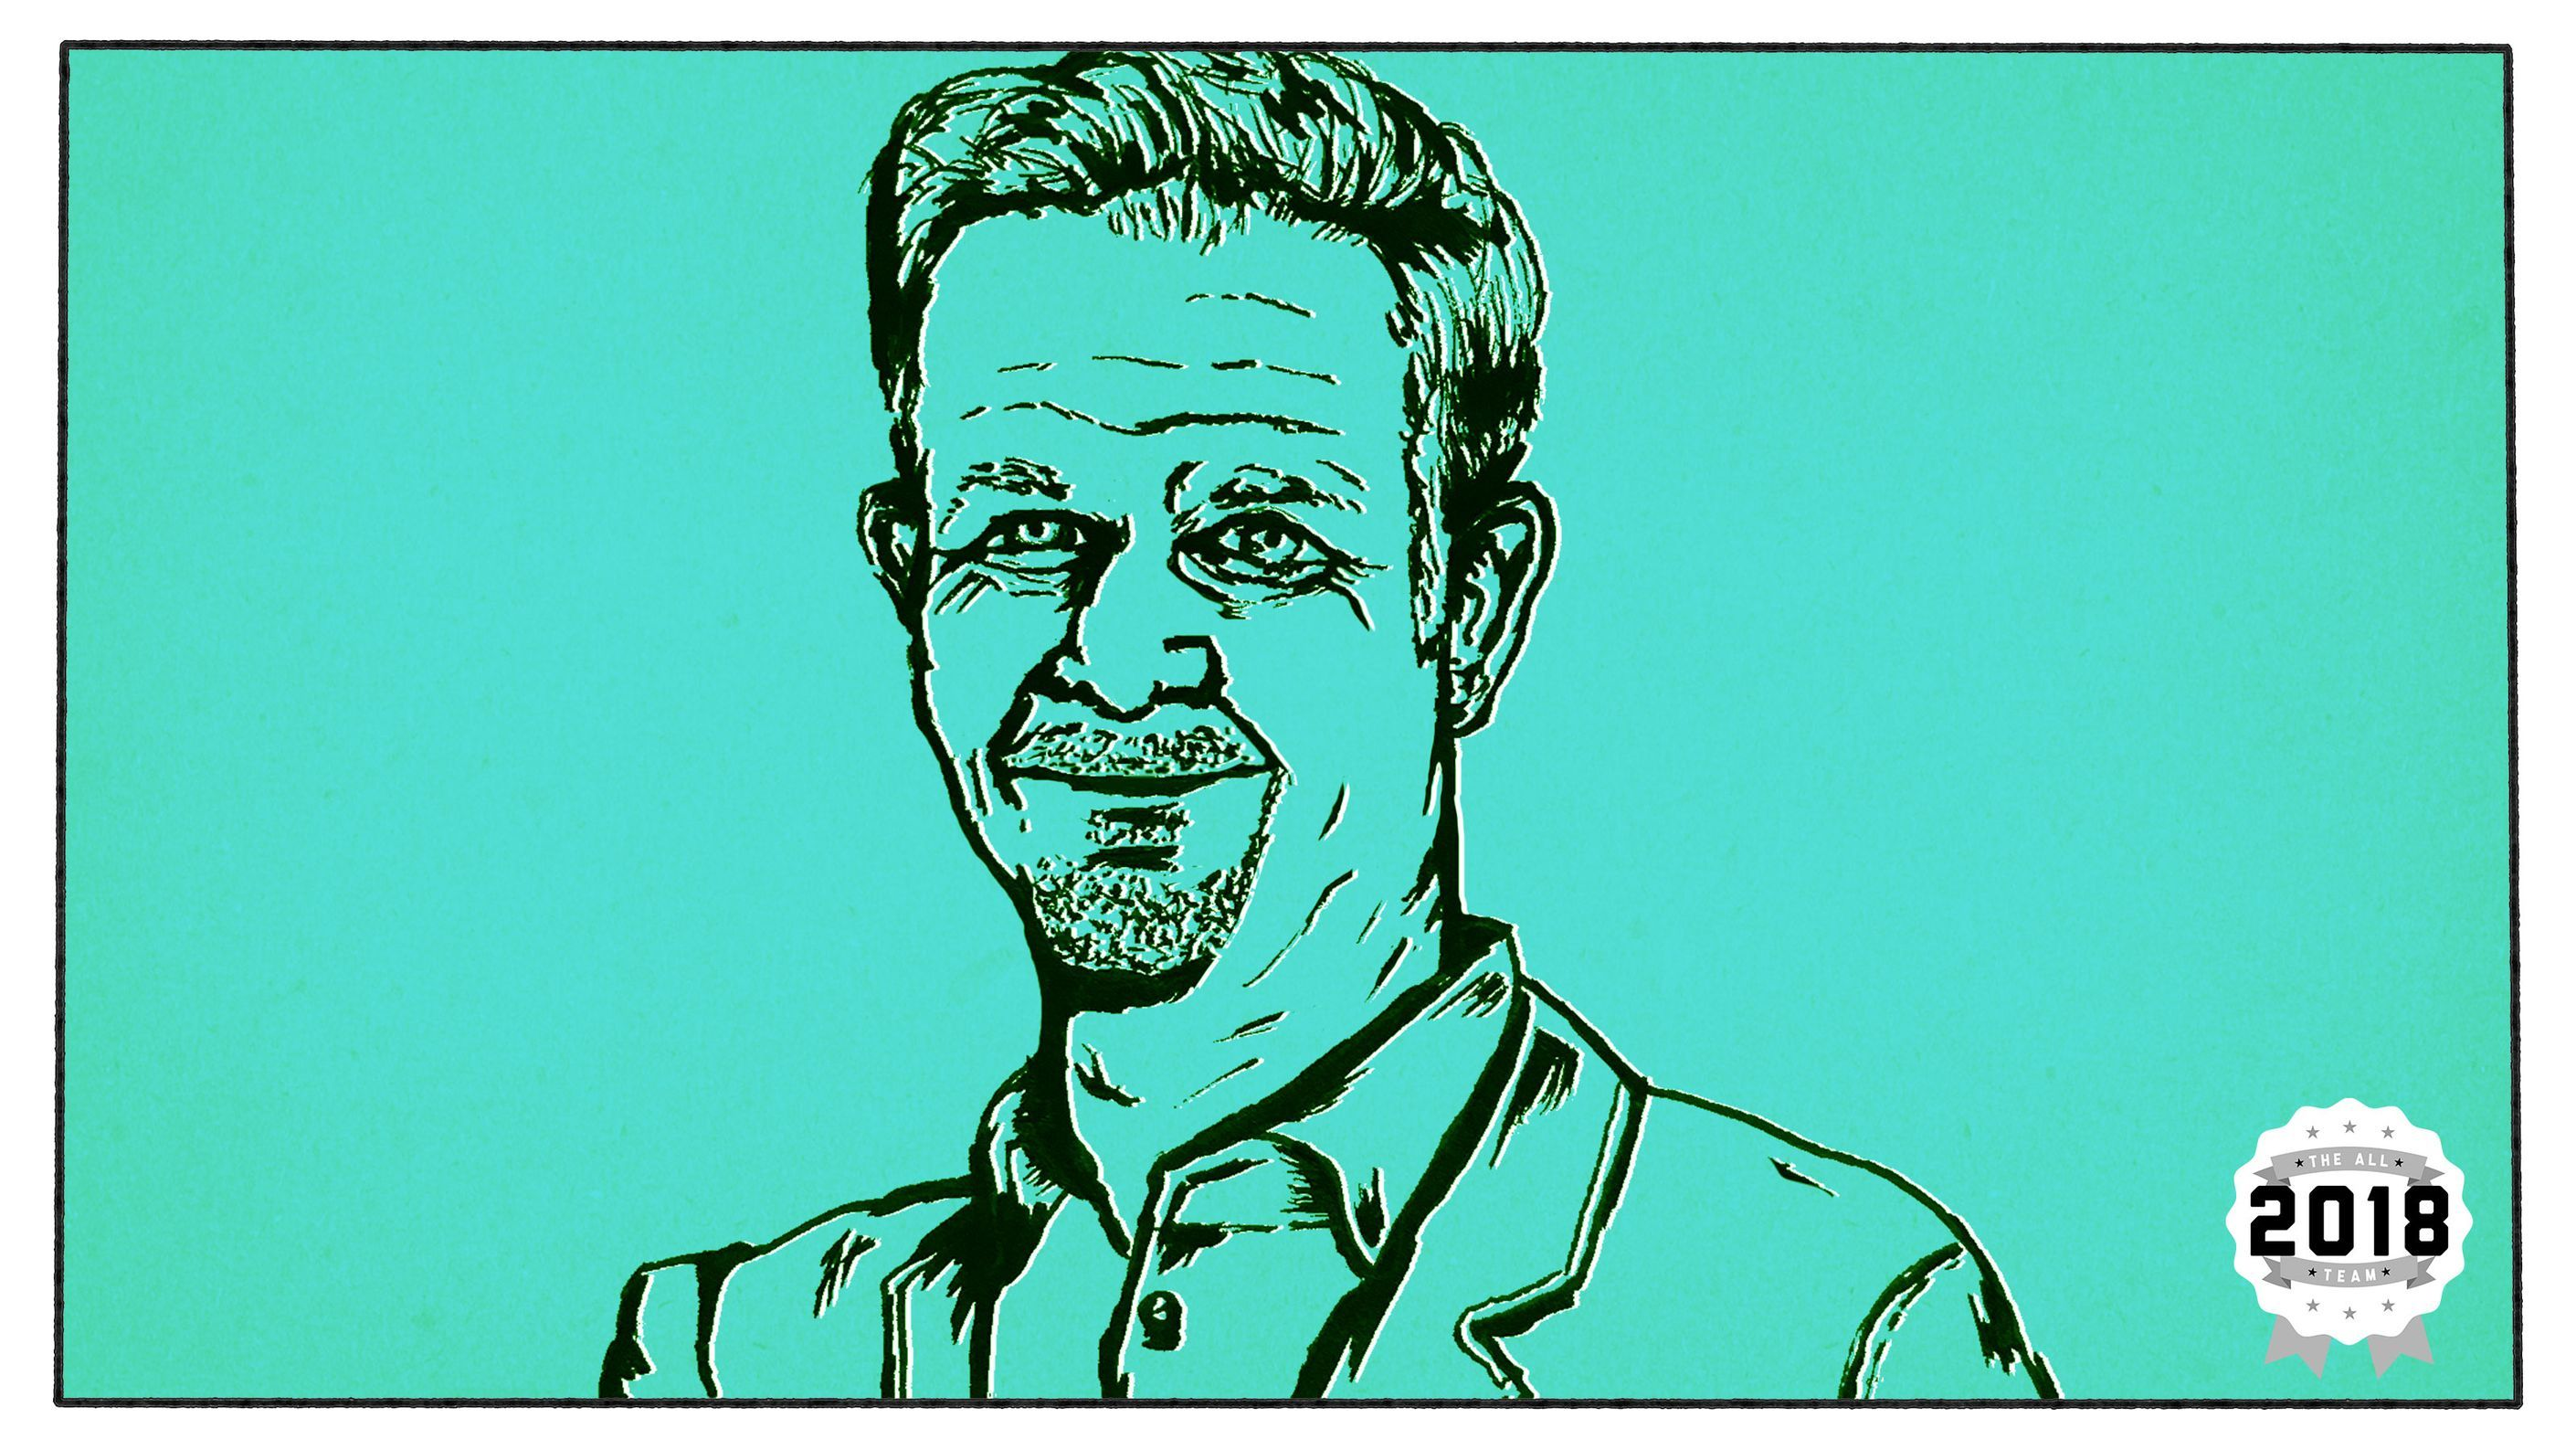 Reed Hastings and Netflix Upended Hollywood. But Is His